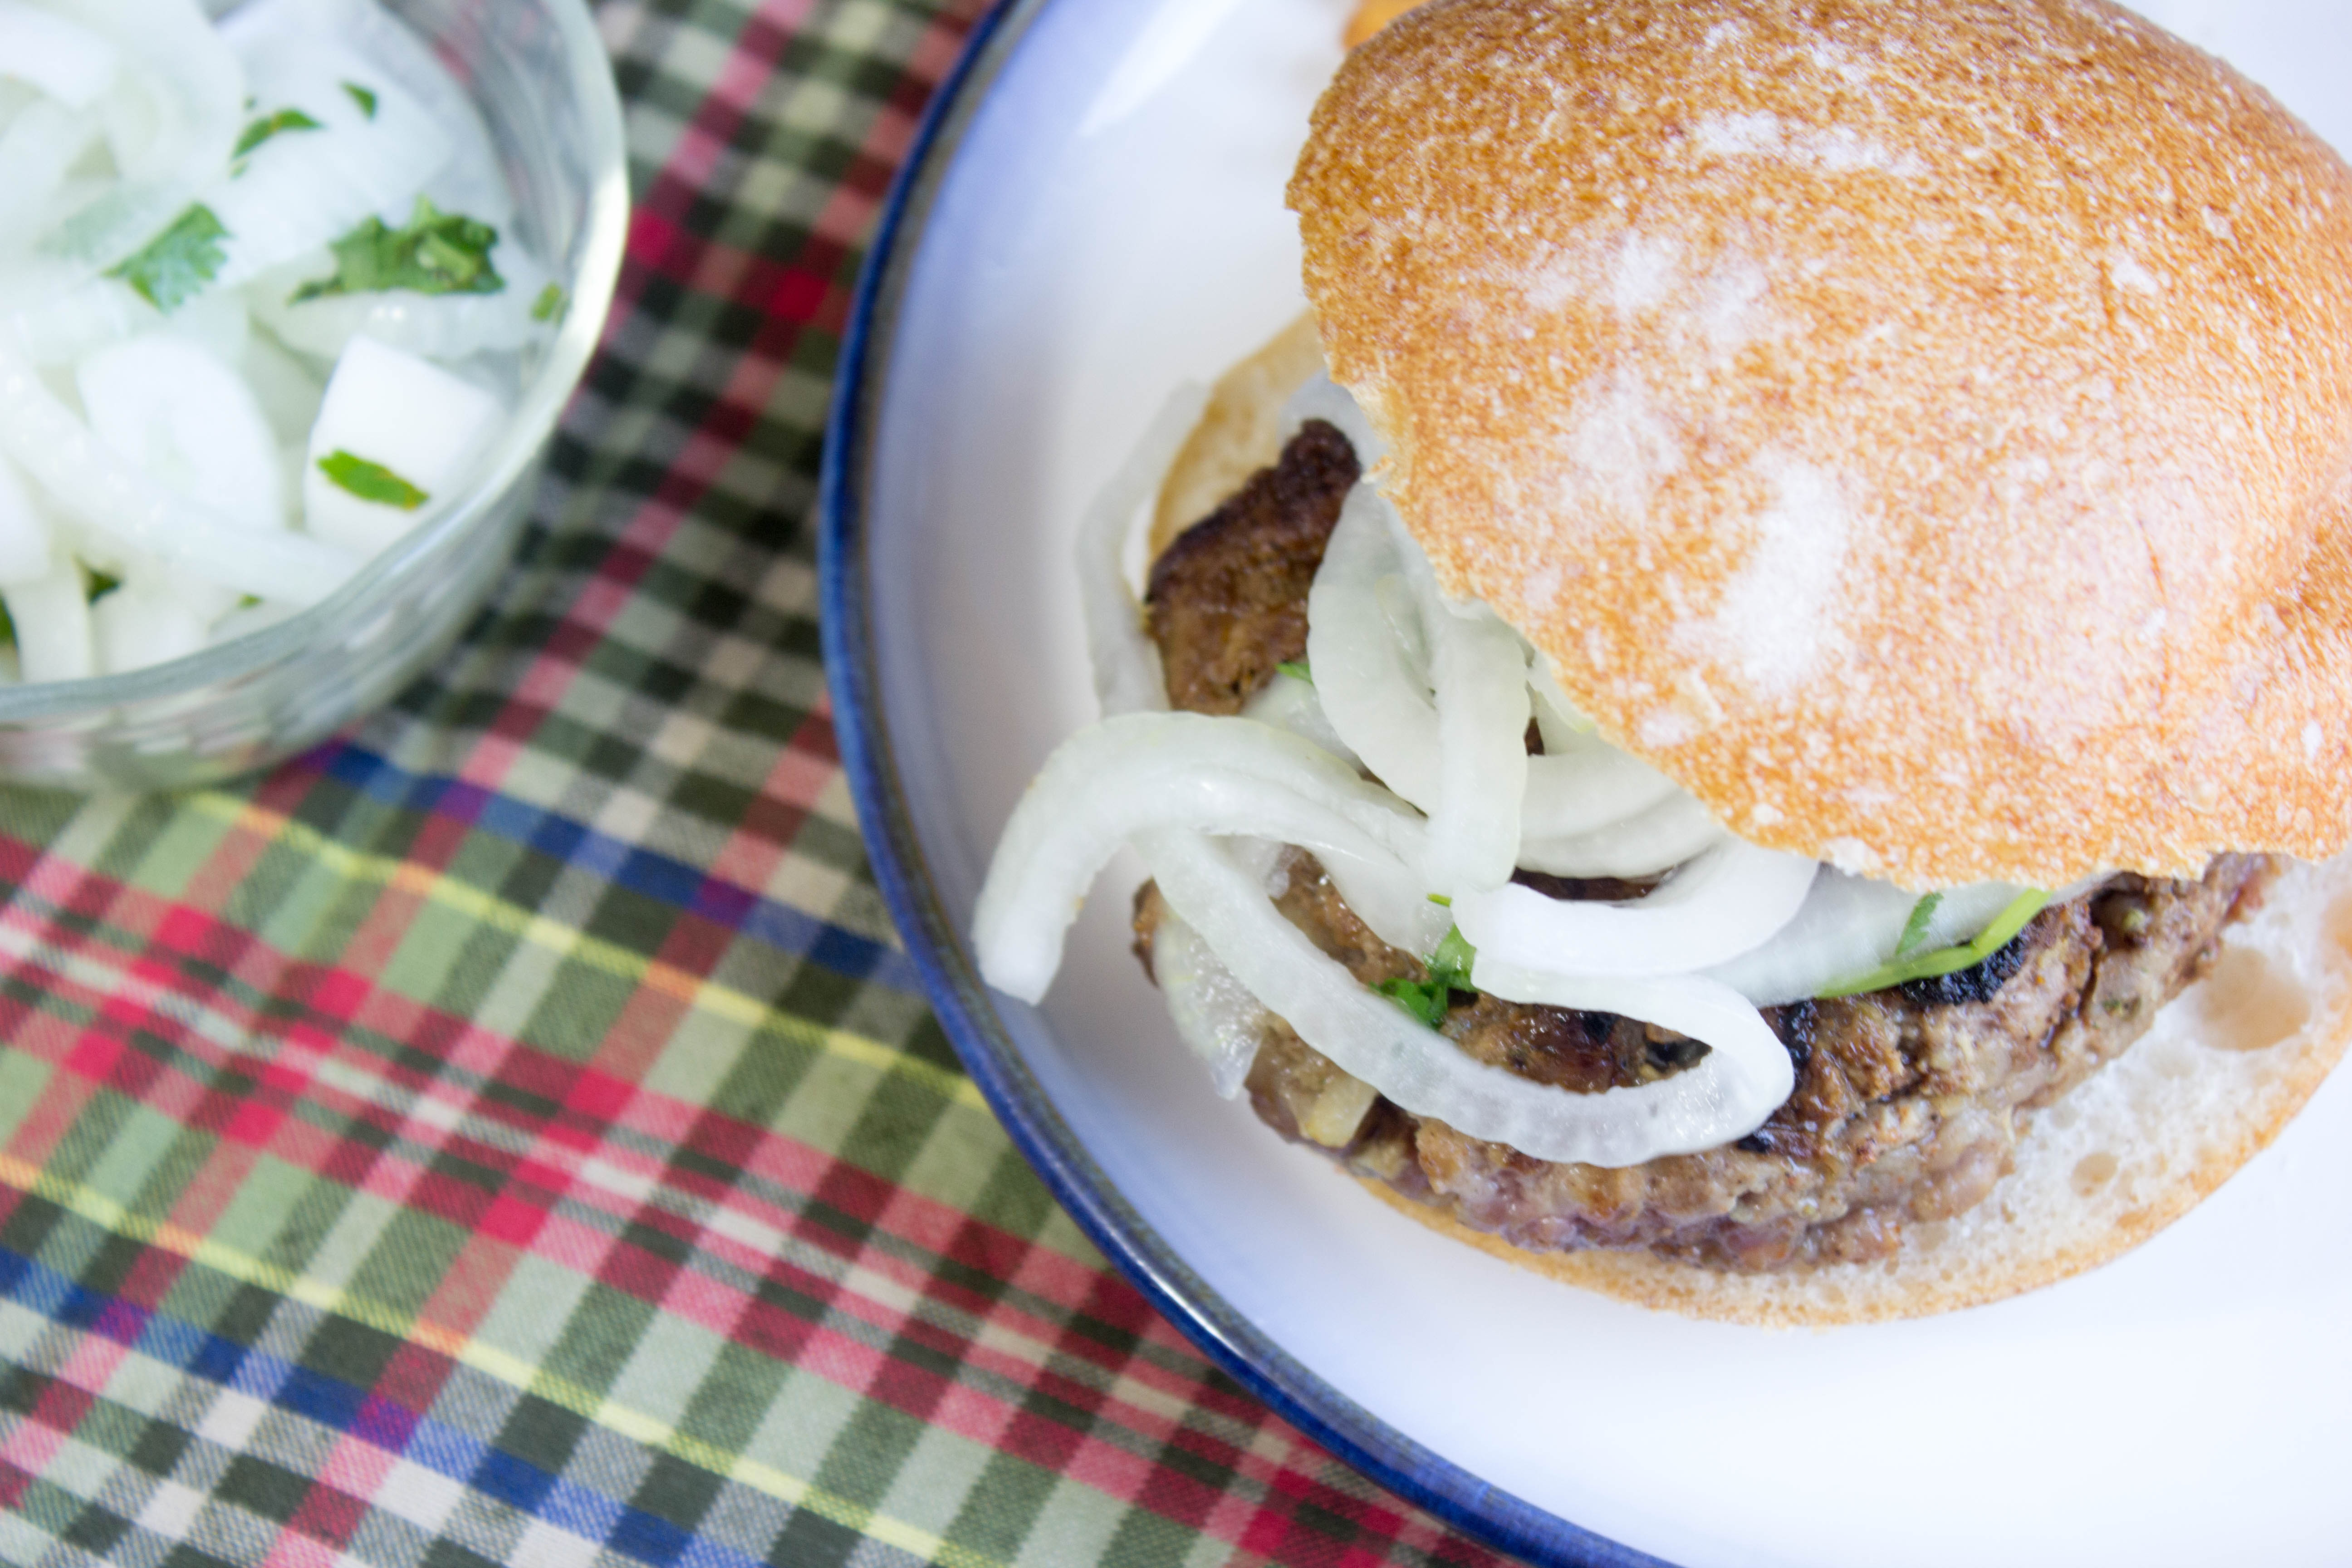 Sri Lankan Lamb Burgers with Onion Salad